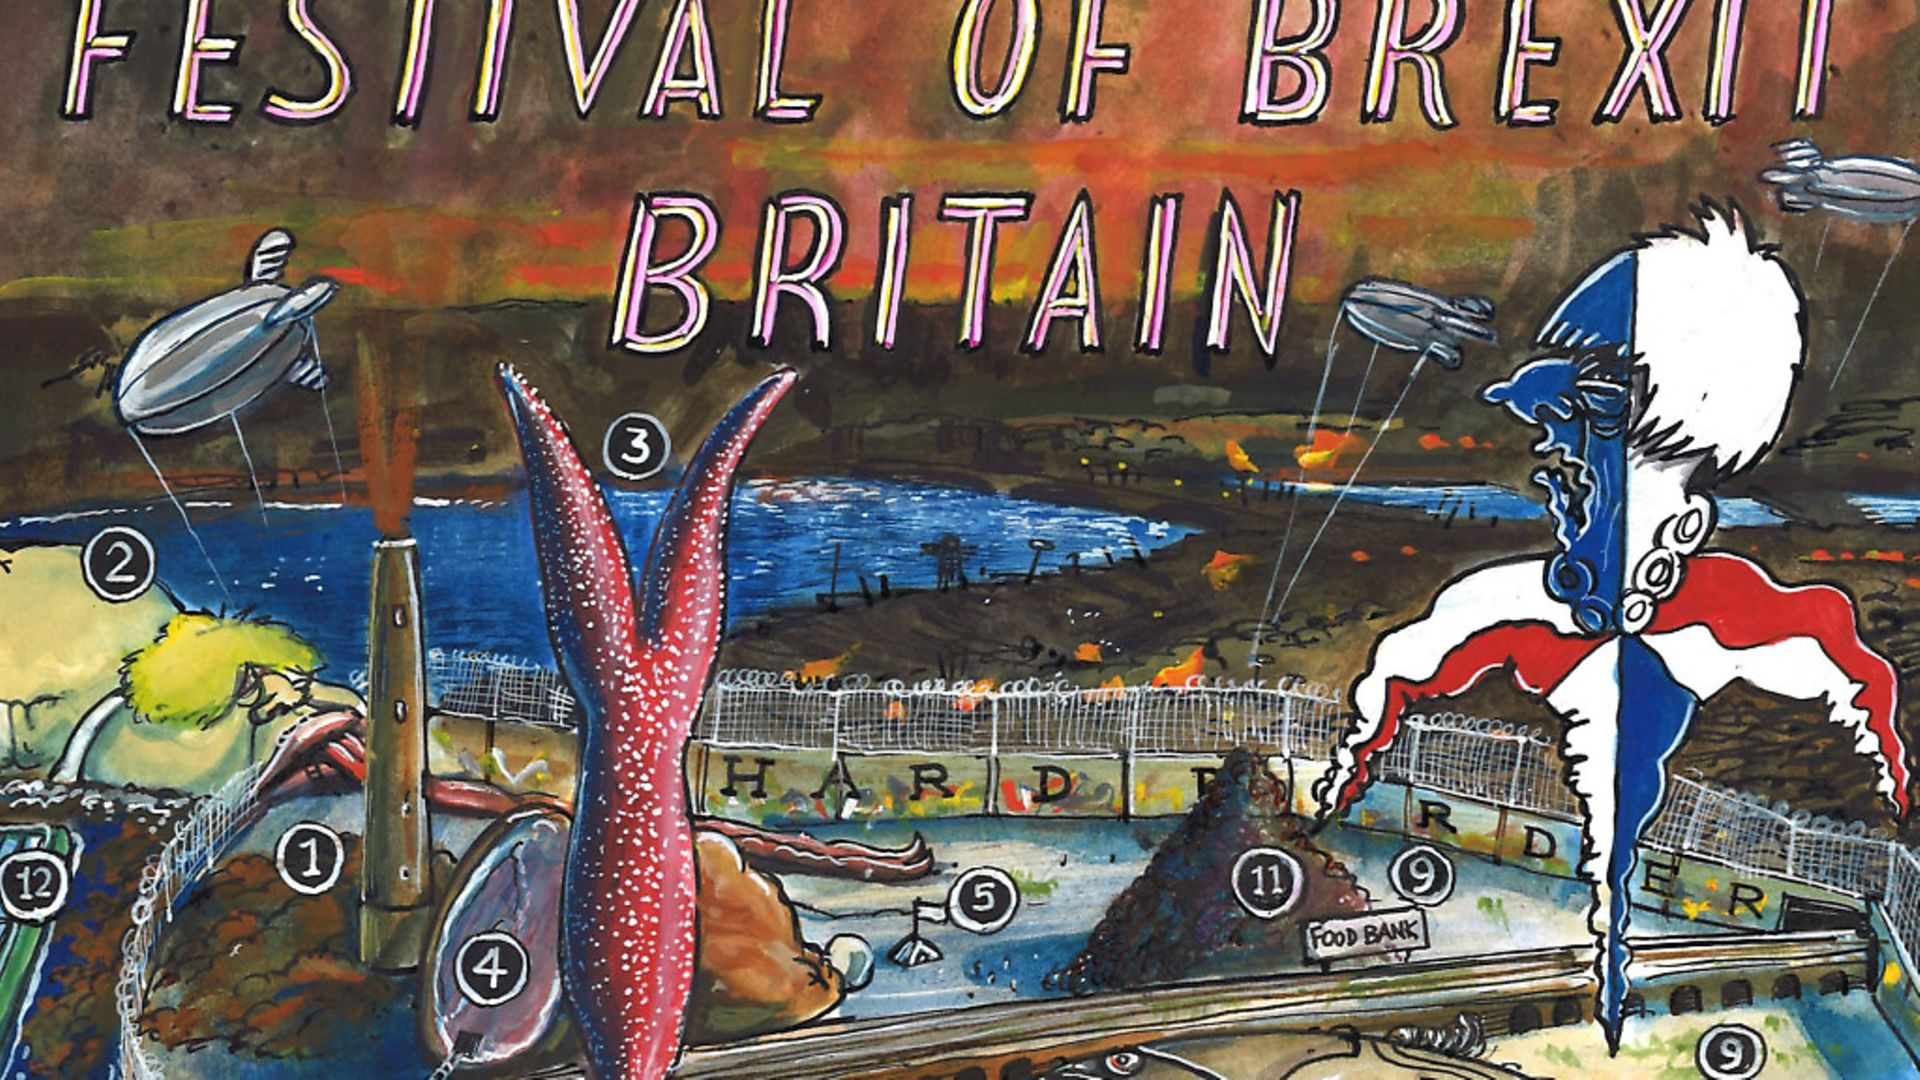 Martin Rowson's front page image focusing on the Festival of Brexit Britain - Credit: Archant